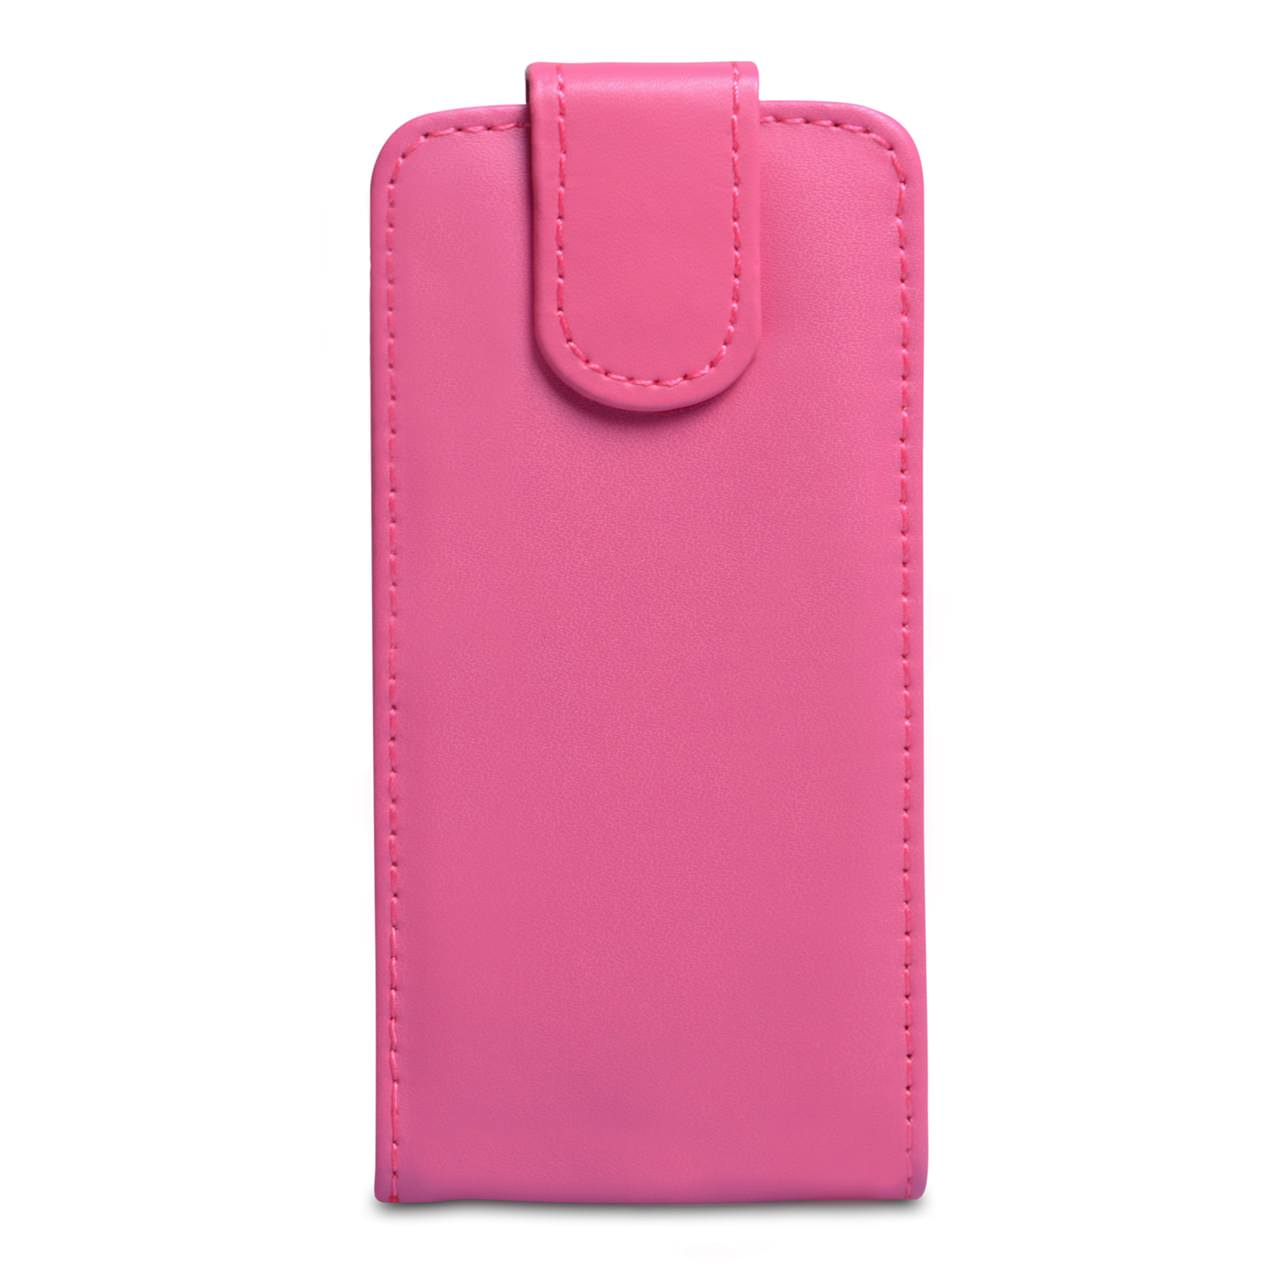 YouSave Samsung Galaxy S4 Mini Hot Pink Leather Effect Flip Case